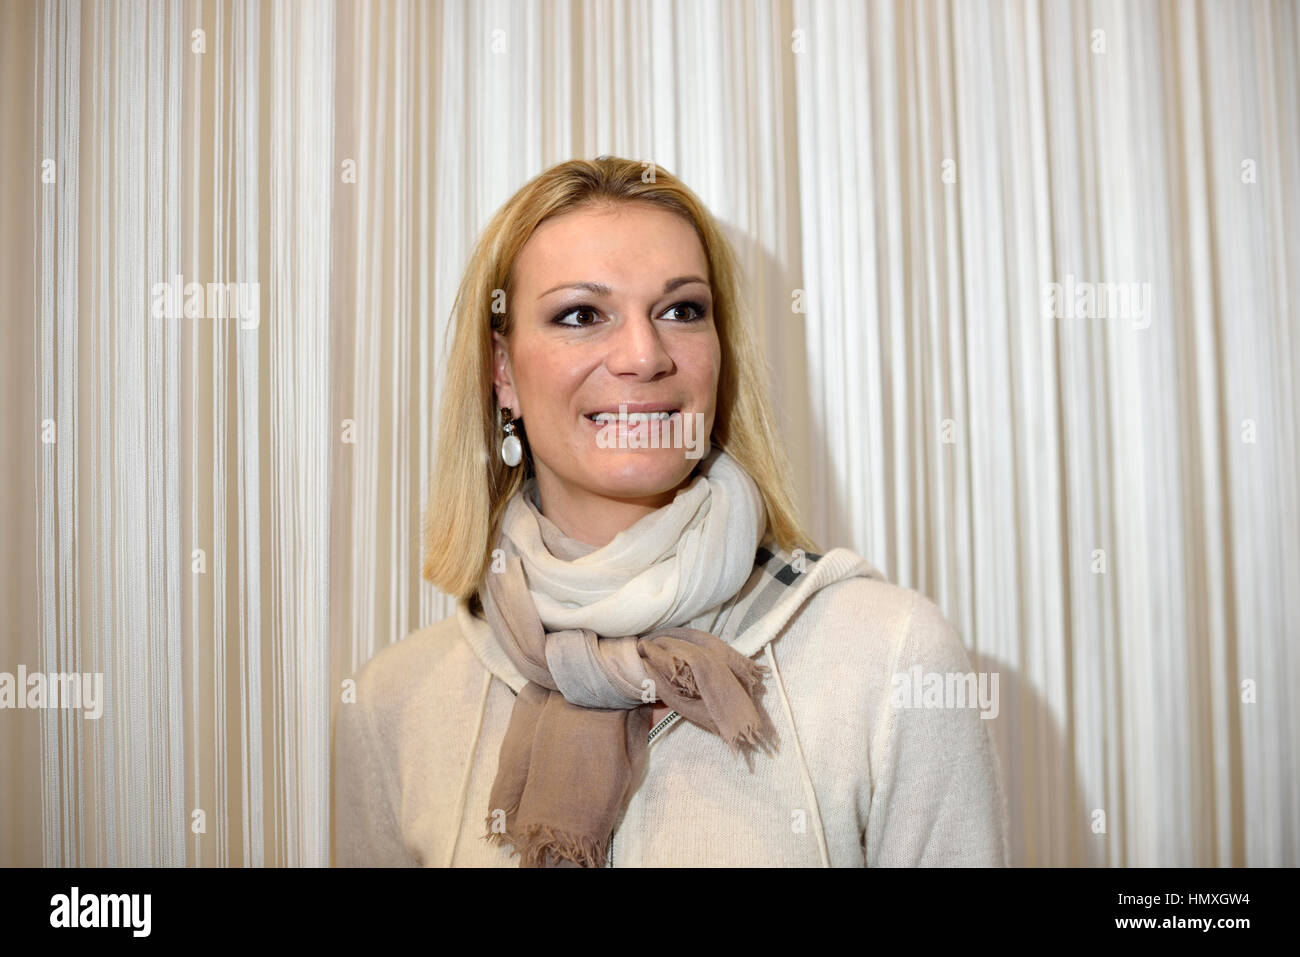 Munich, Germany. 6th February, 2017. Maria Höfl-Riesch, former German alpine ski racer and Olympic gold medalist, - Stock Image